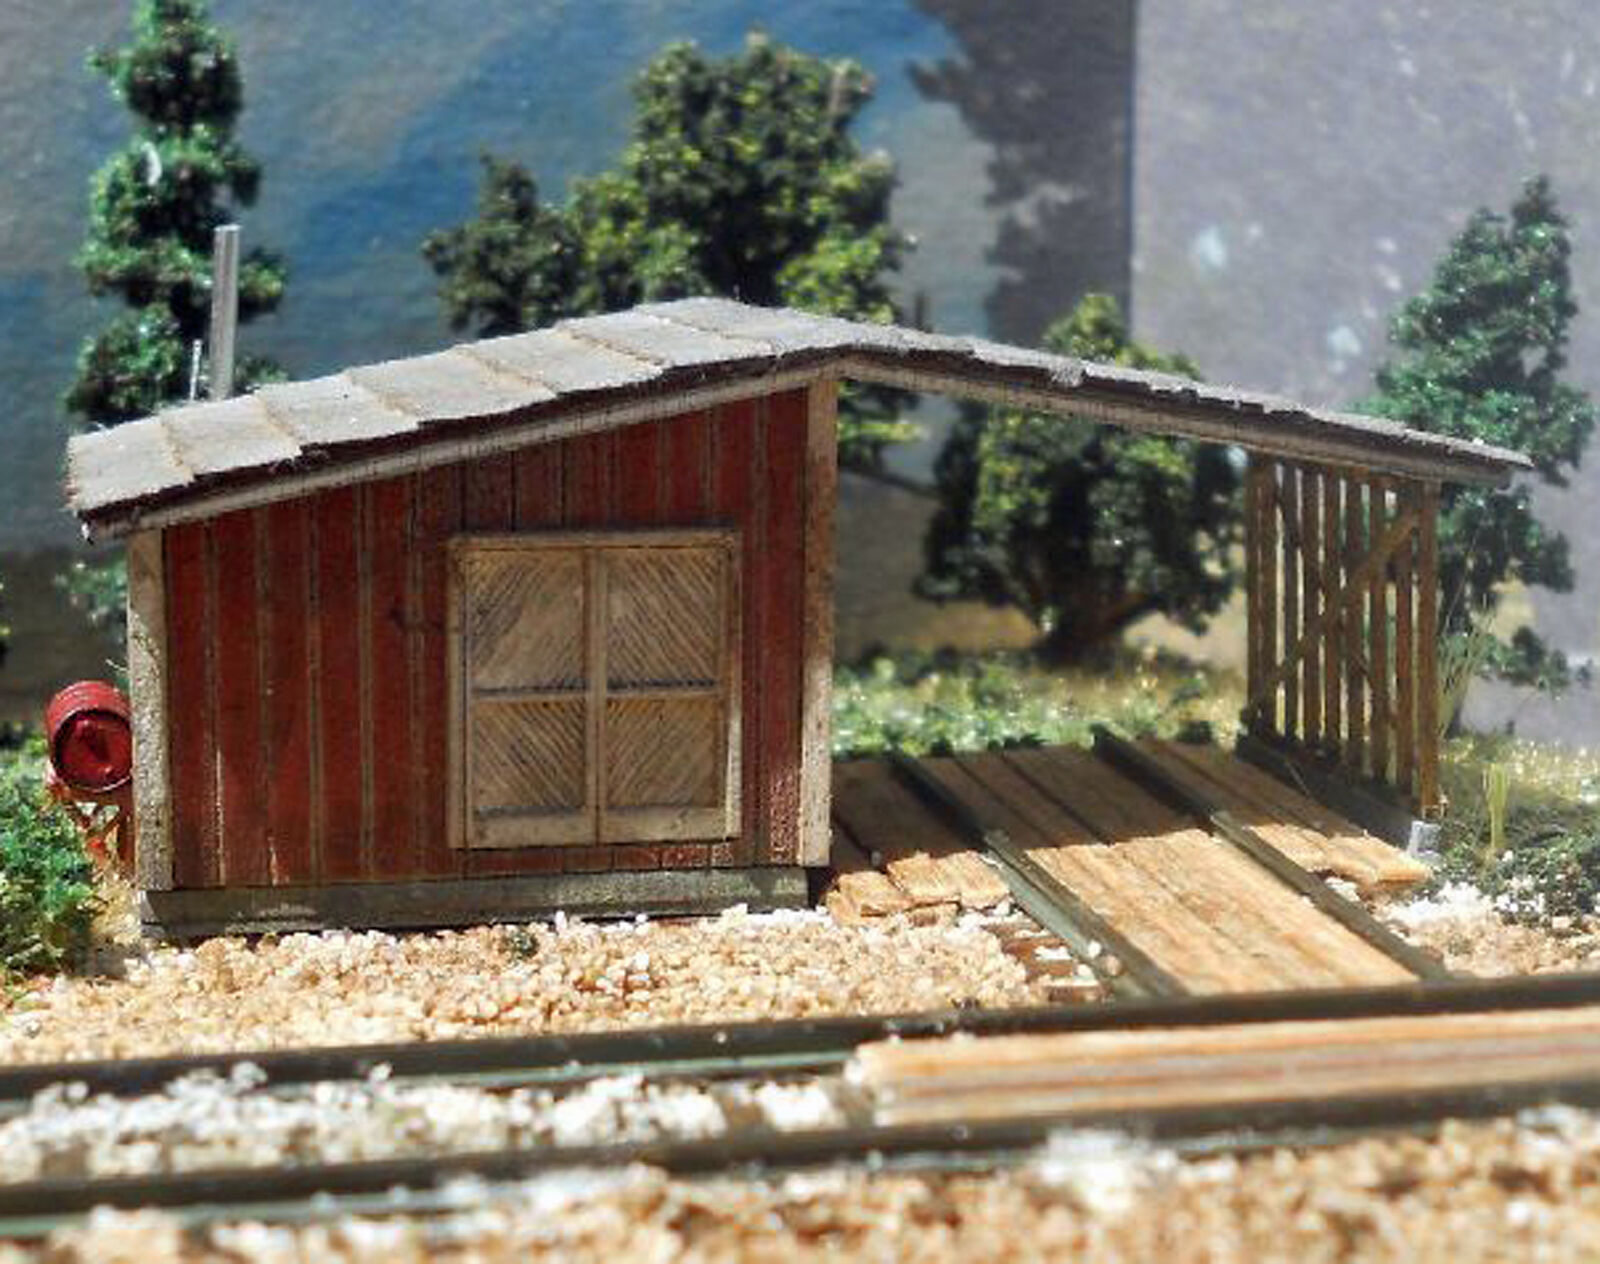 SPEEDER SHED N Scale Model Railroad Structure Unpainted Wood Laser Kit RSL3049